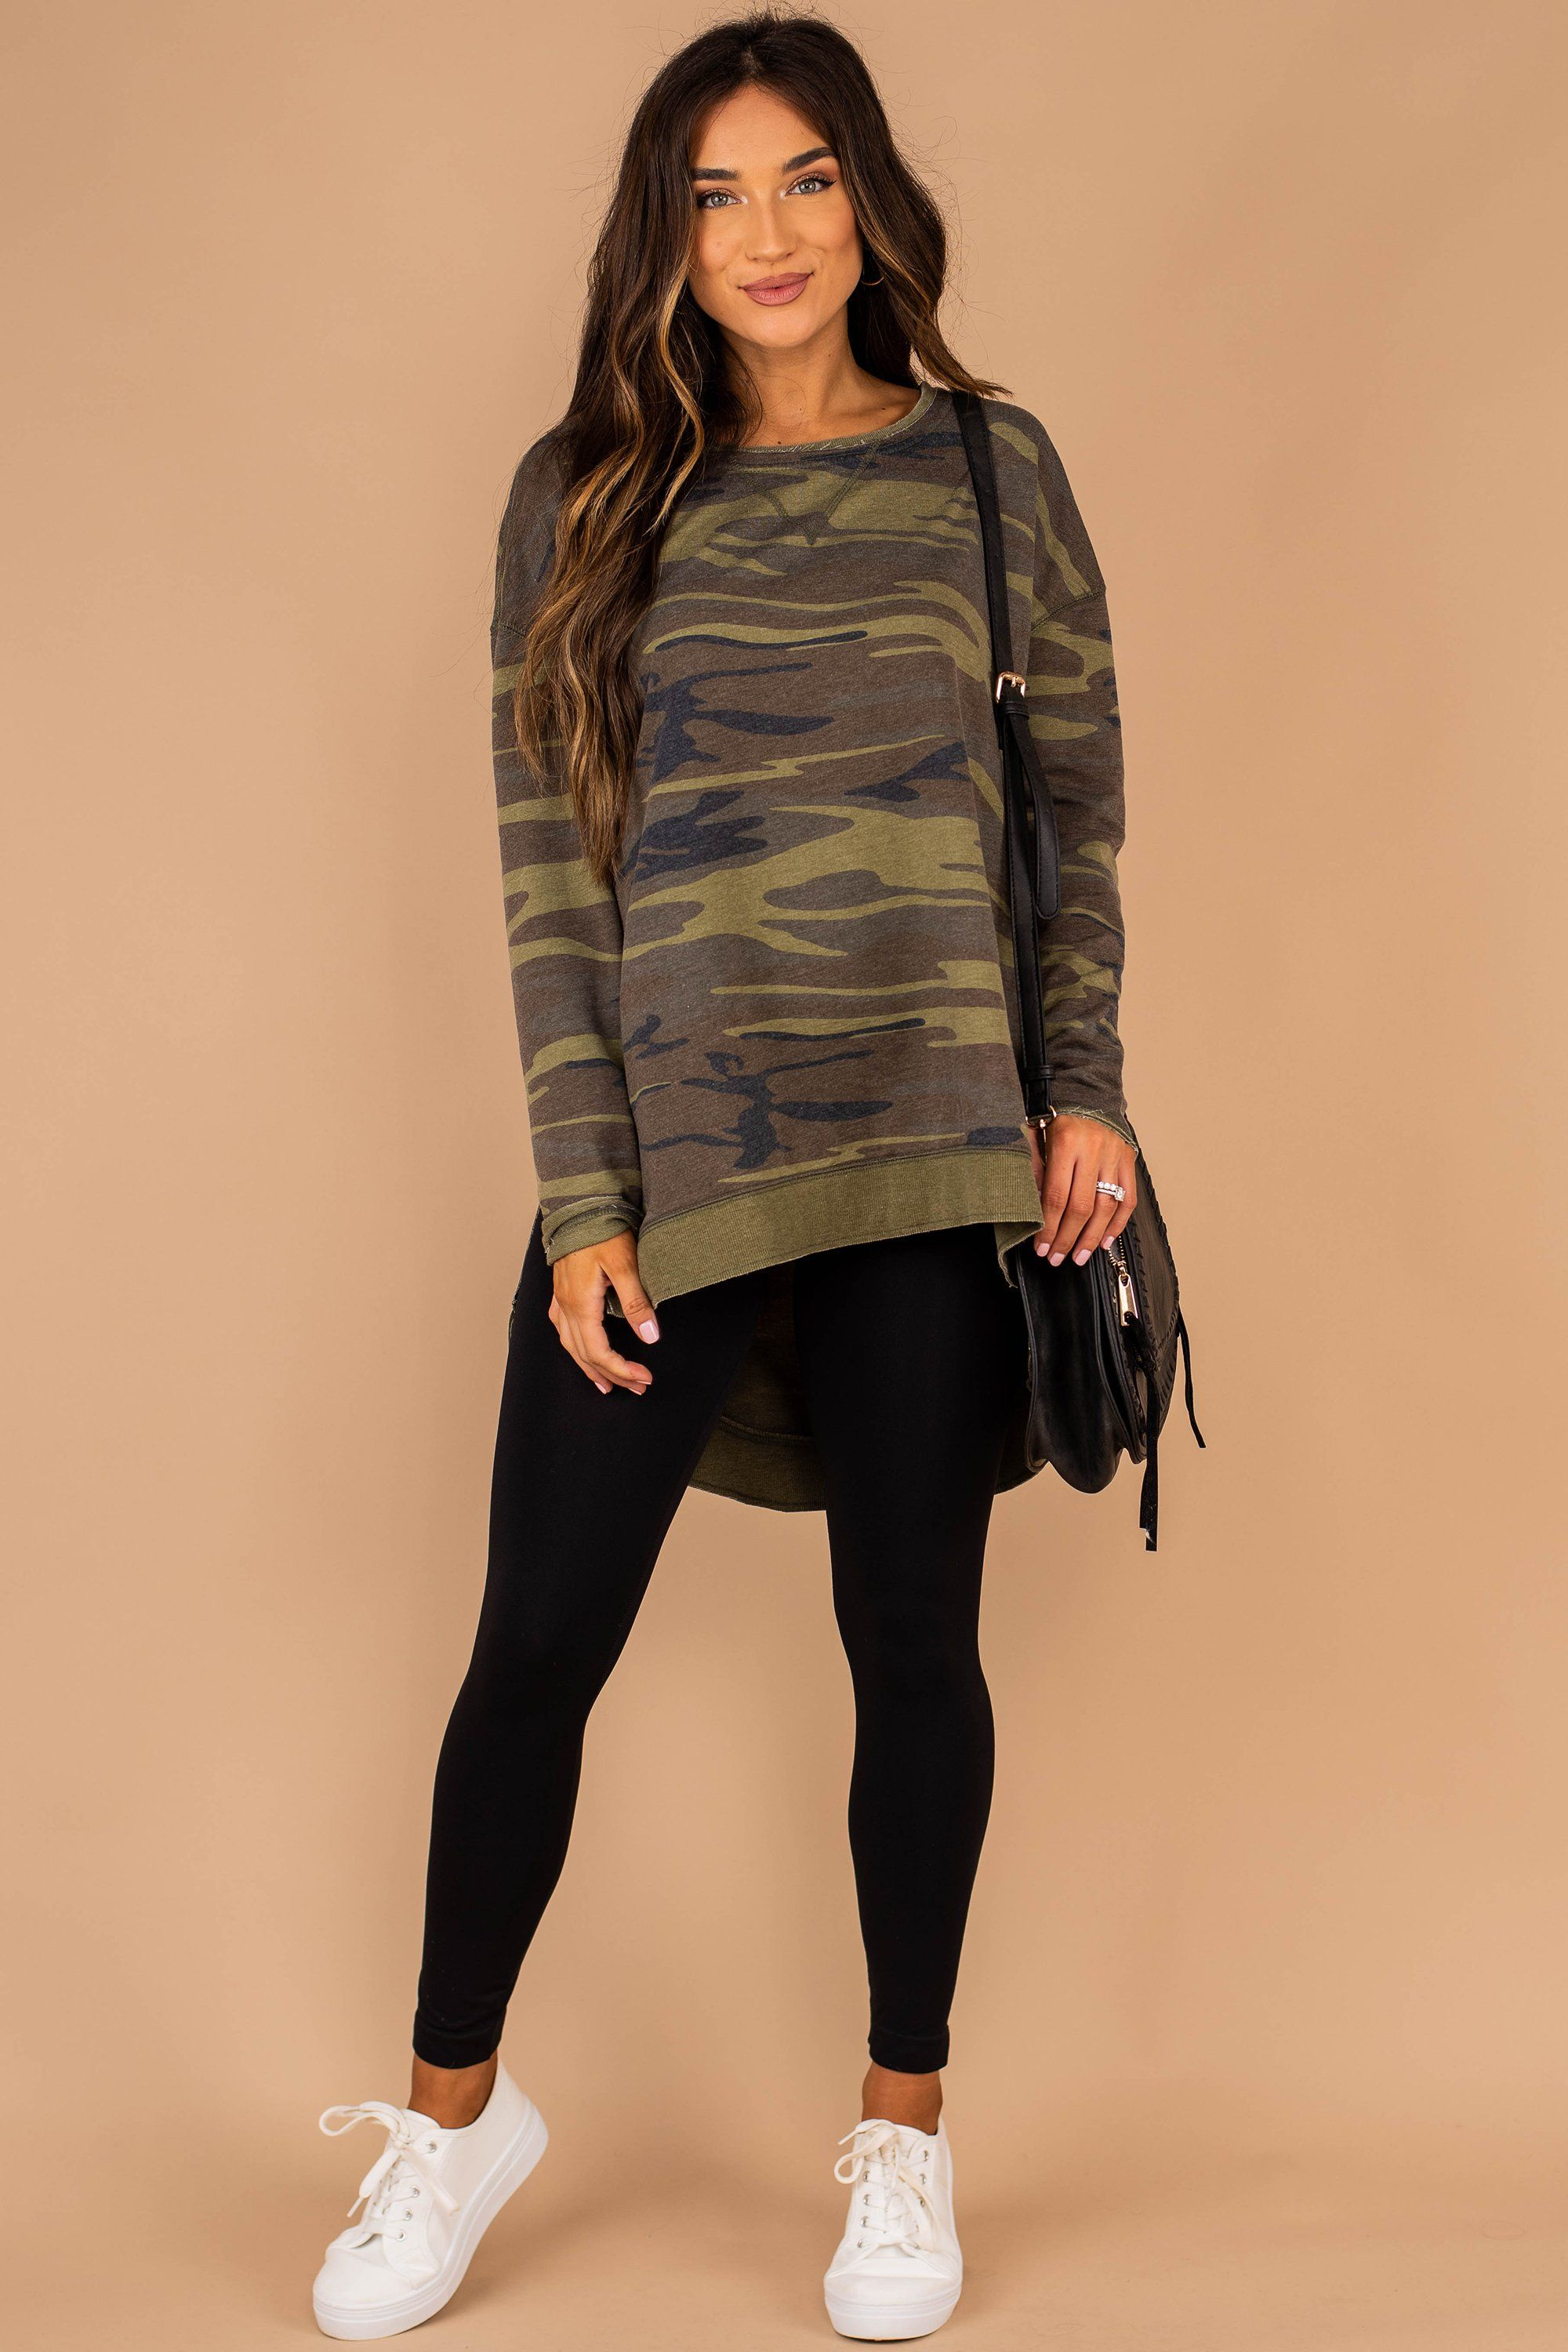 Z Supply The Weekender Olive Green Camo Top In 2020 Printed Leggings Outfit Outfits With Leggings Camo Leggings Outfit